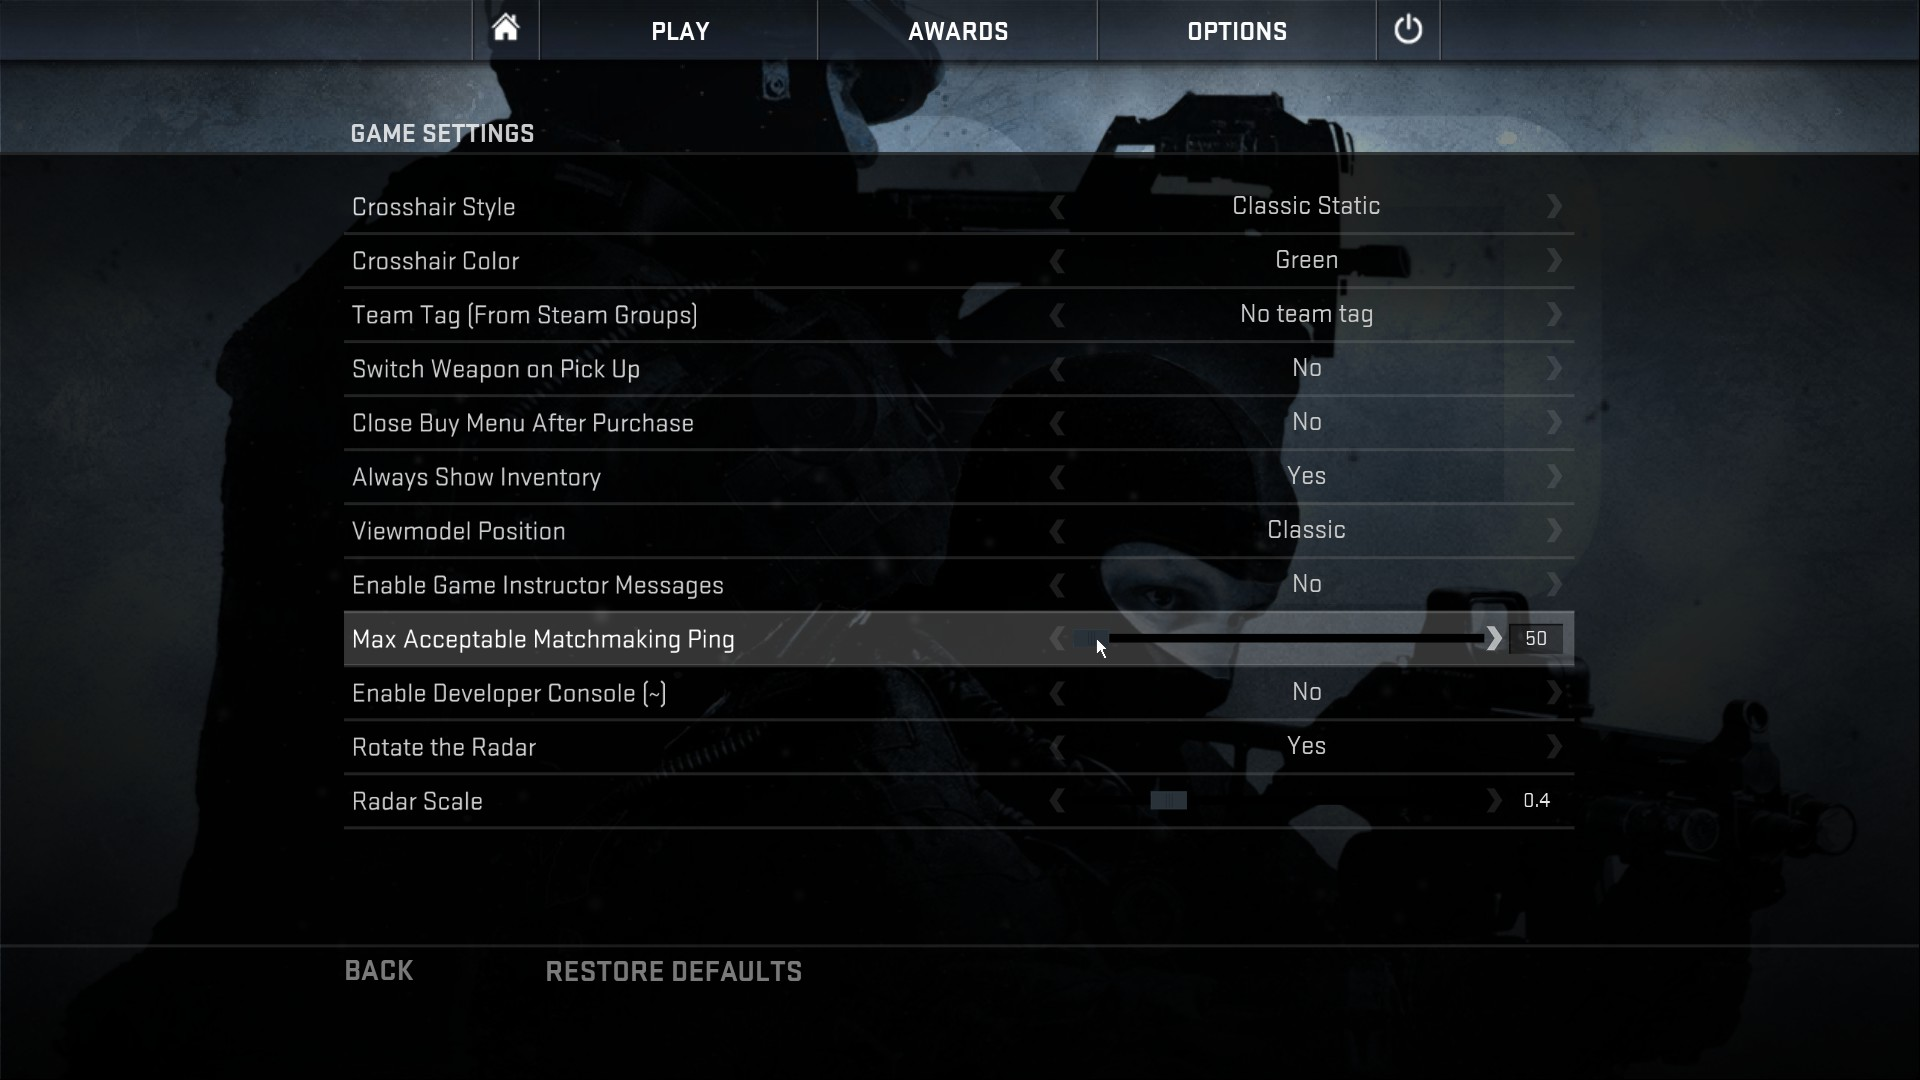 A Modding Tool for Counter-Strike: Global Offensive